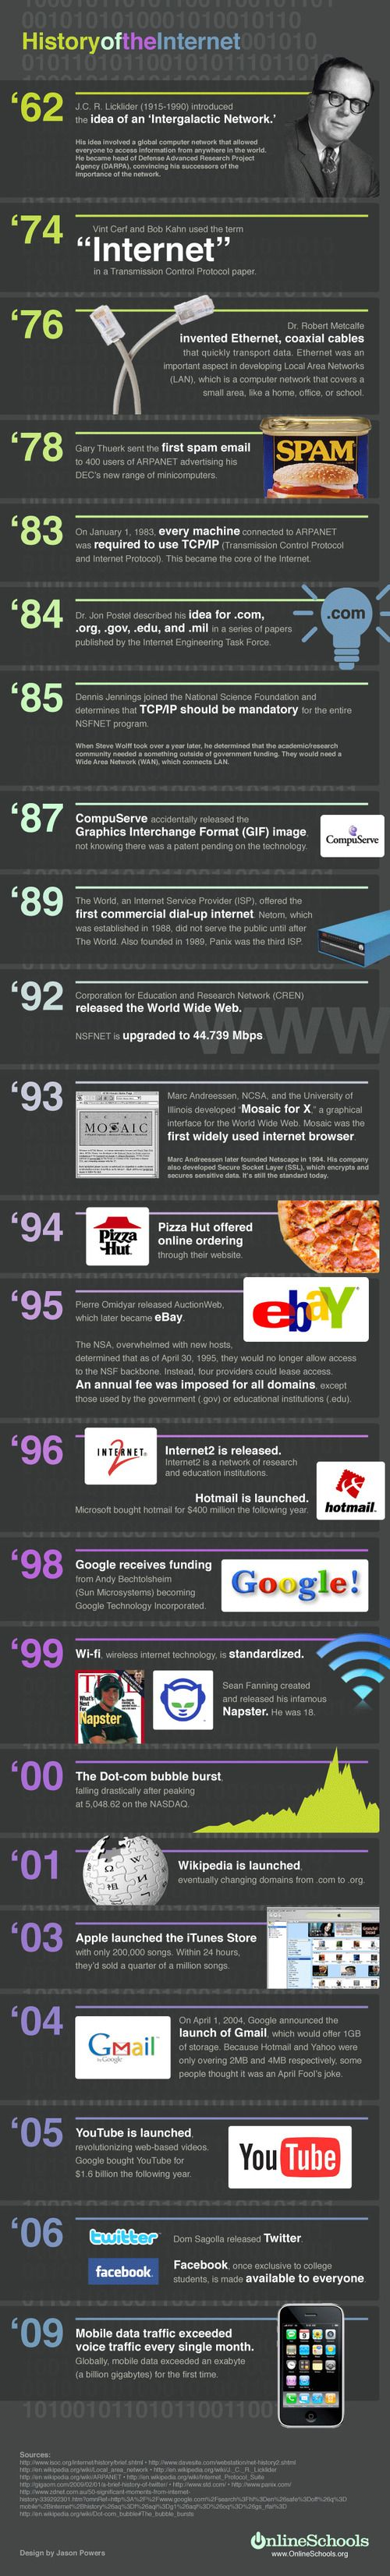 An awesome infographic about the history of internet!